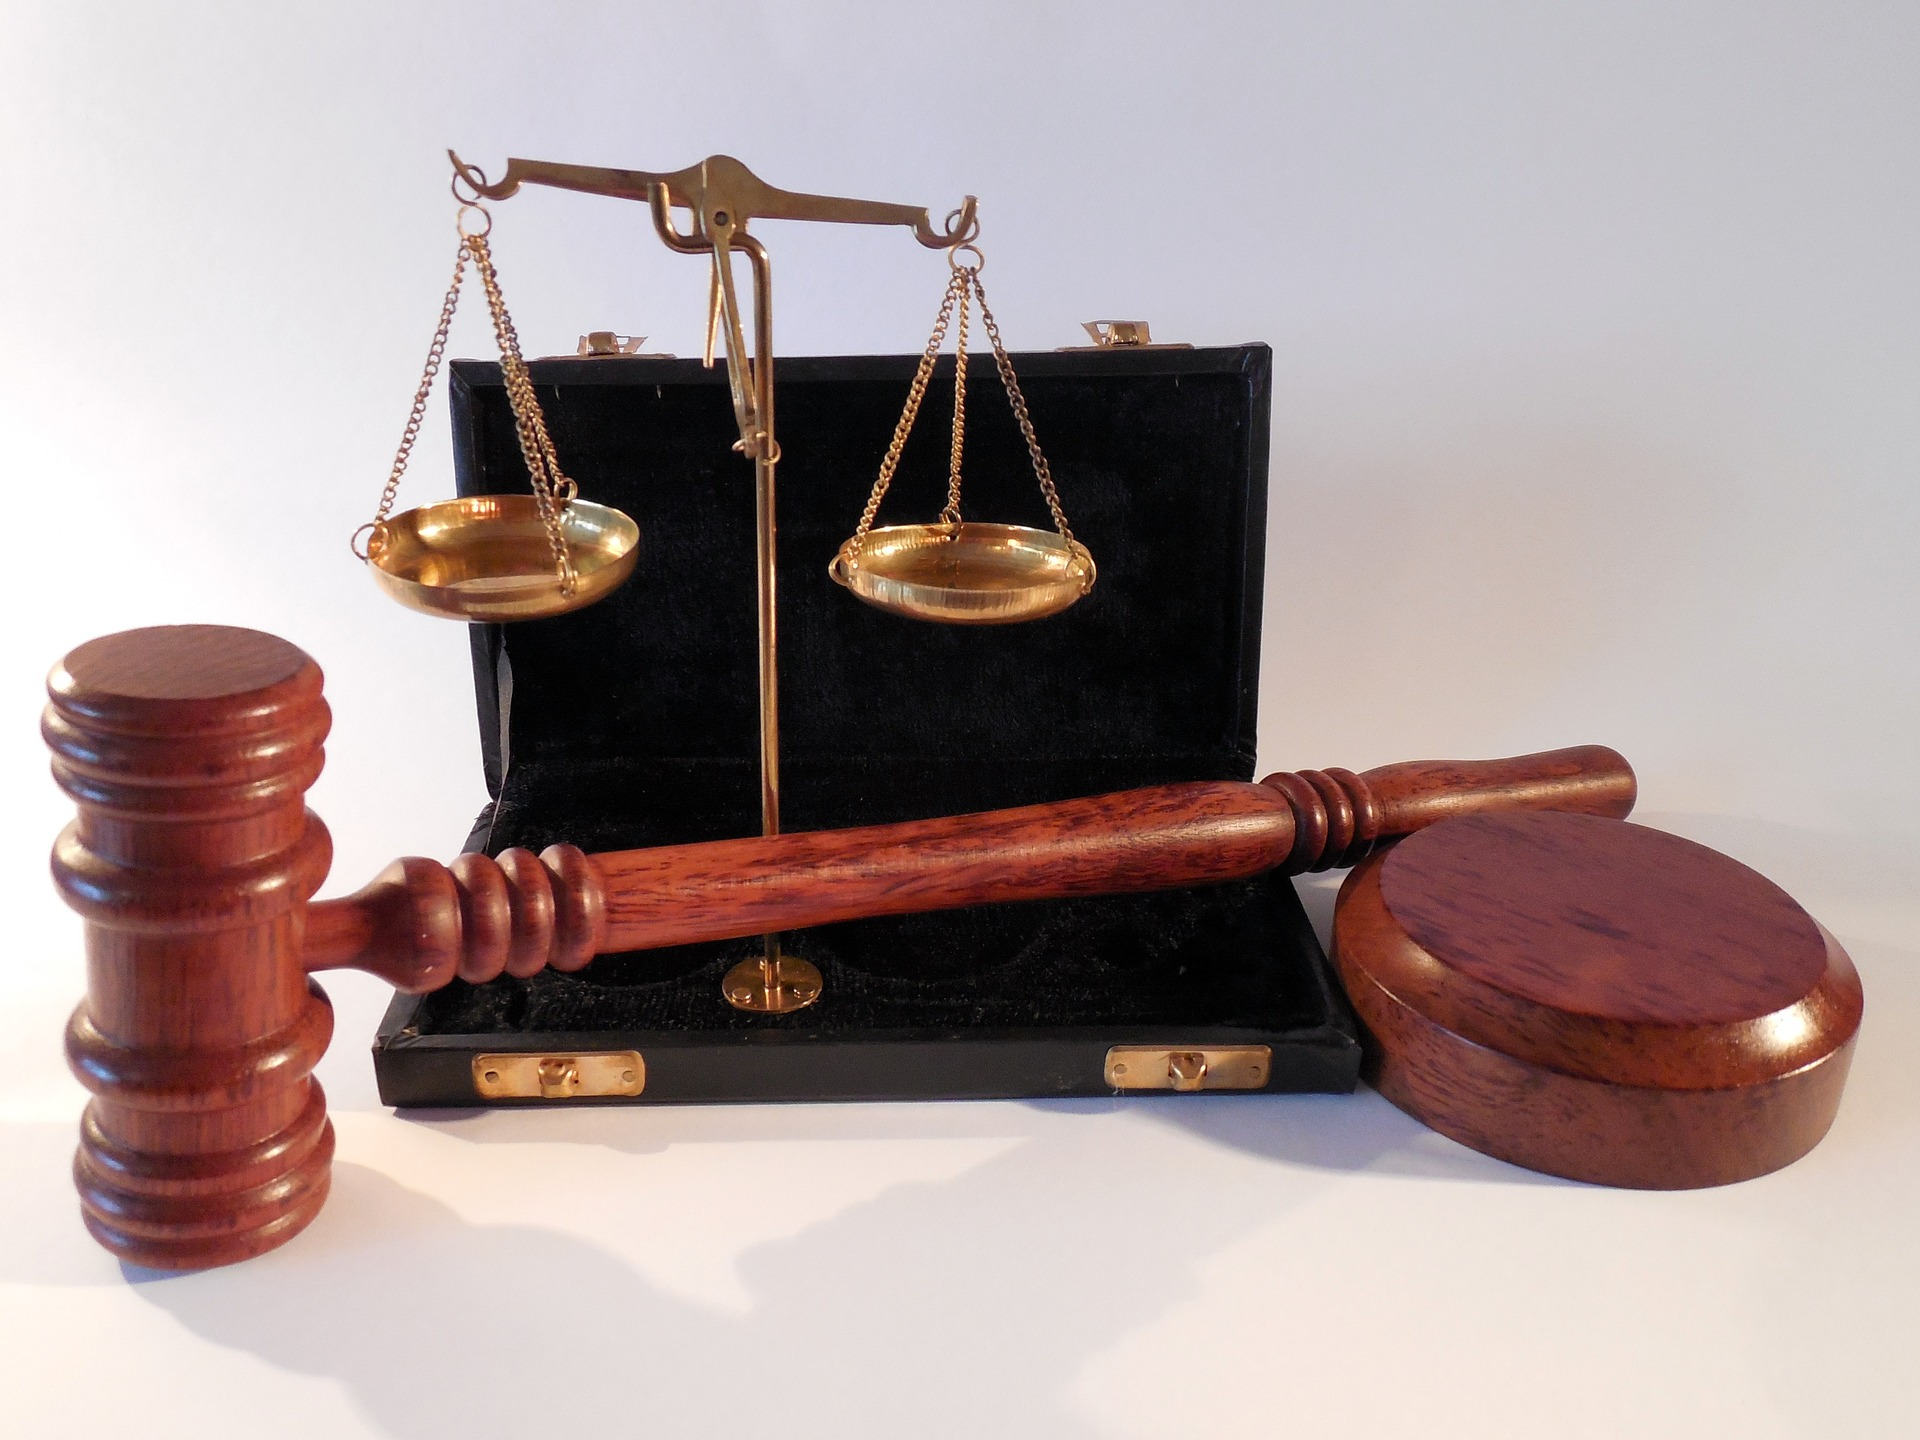 scales, gavel, and book